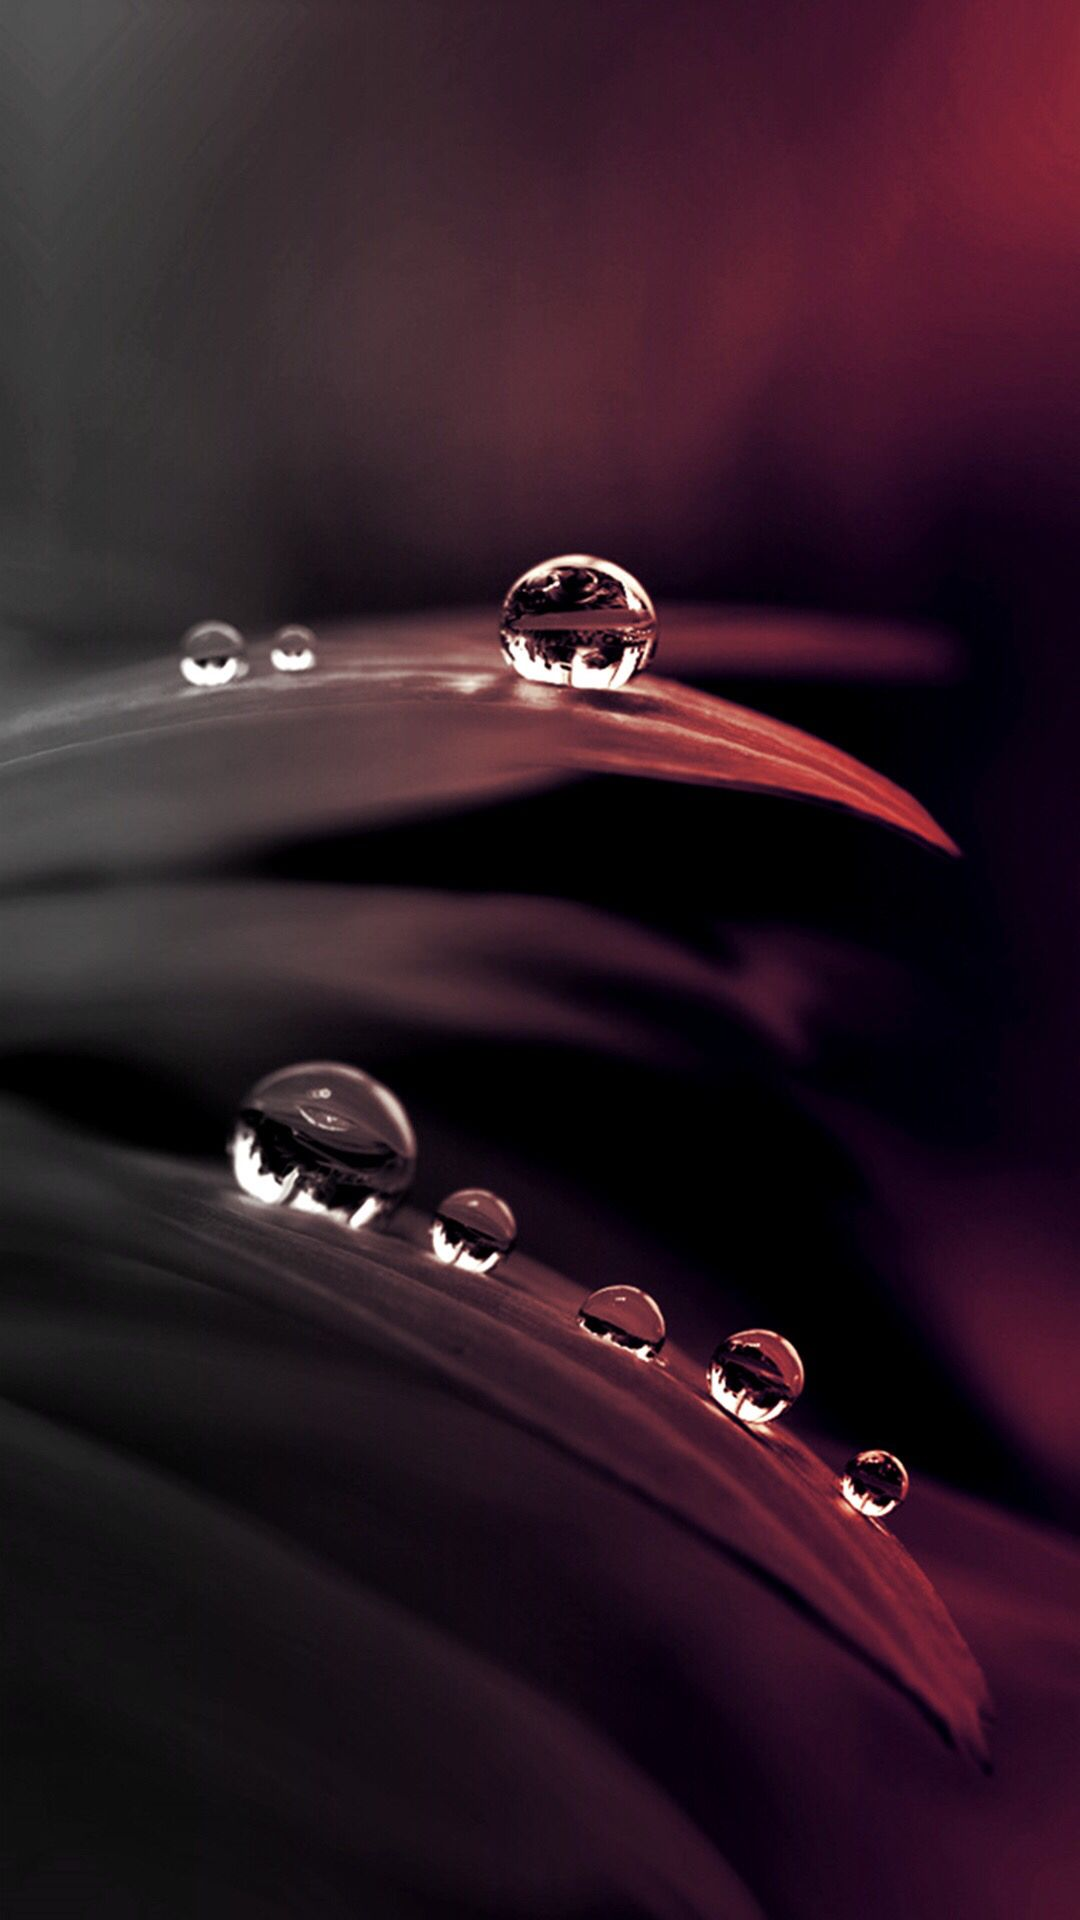 Water Leaf Wallpaper Water Drop Photography Water Photography